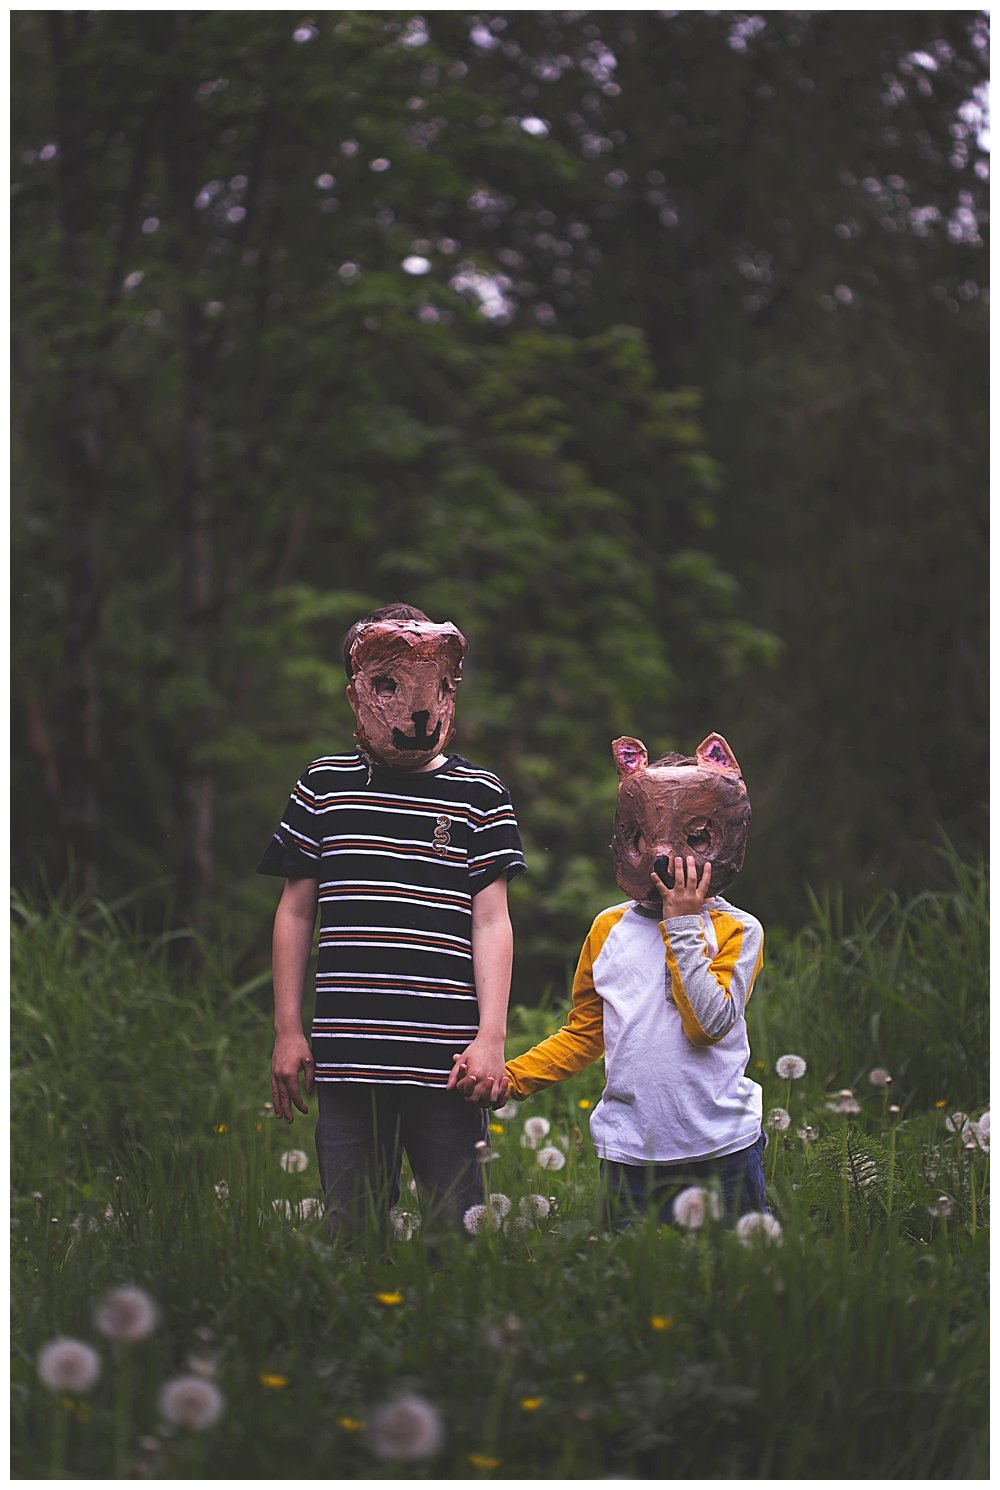 Kids in animal masks heading to the Pet Sematary.